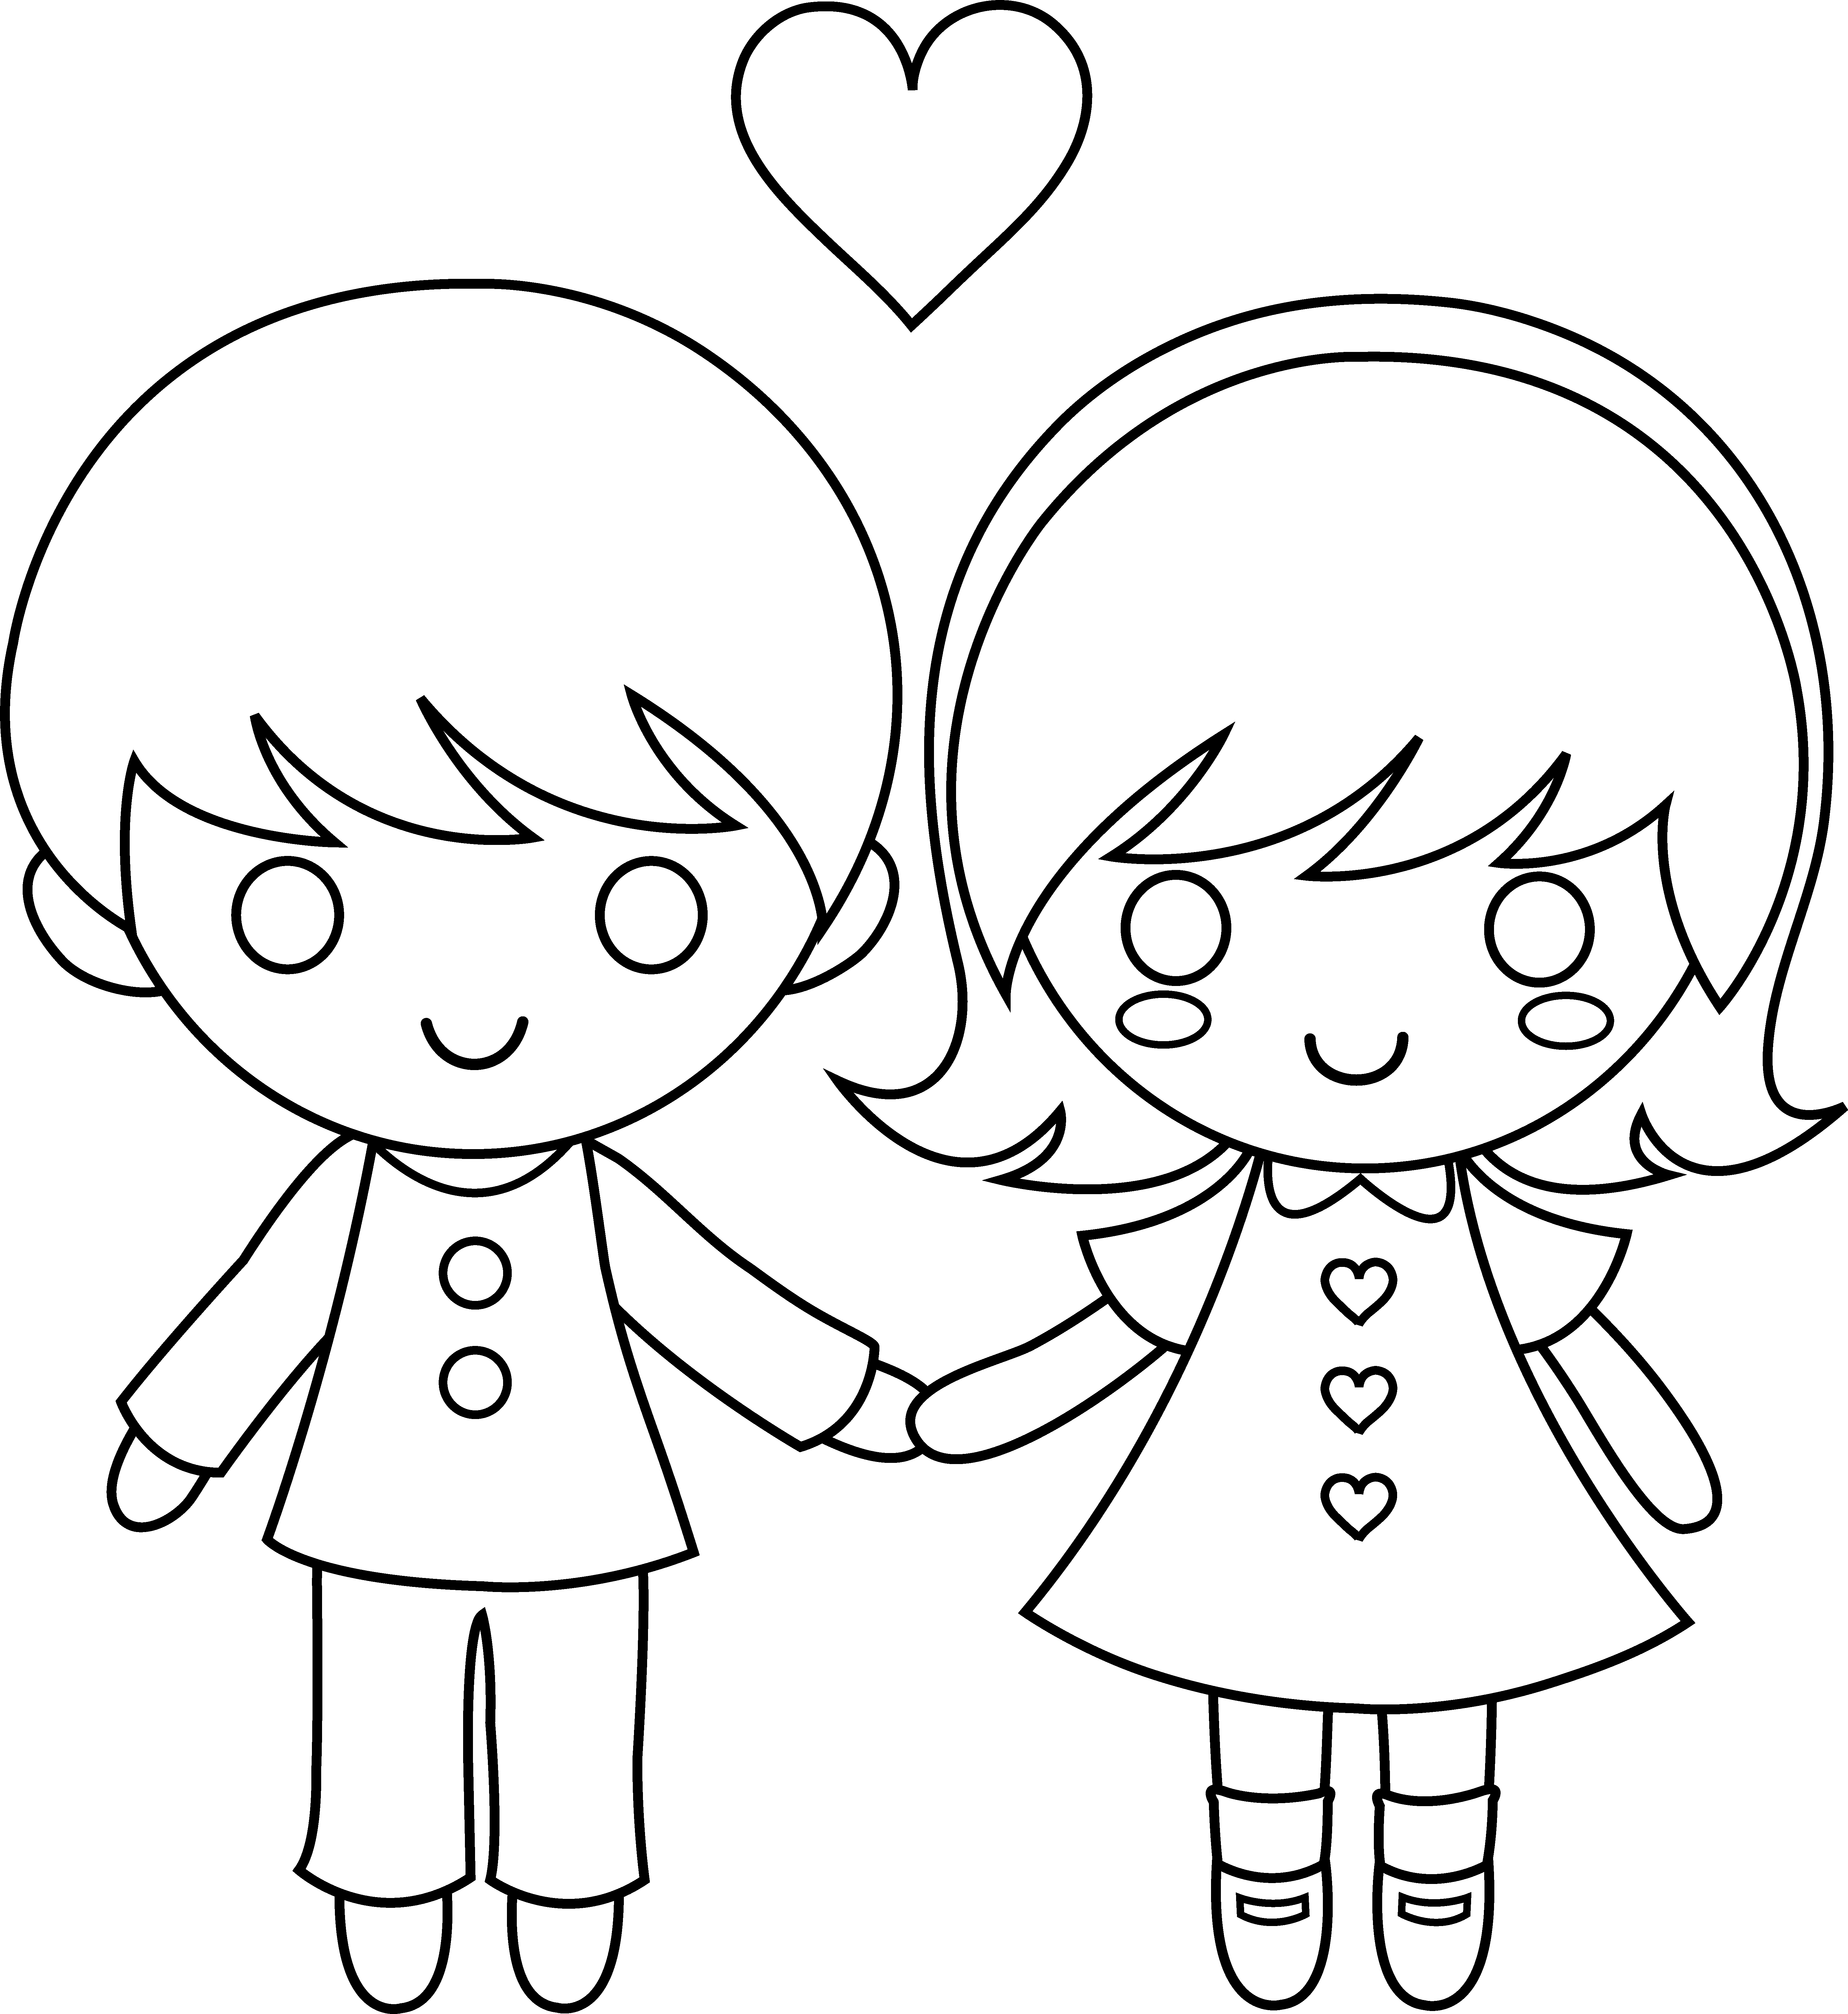 boy valentines day coloring pages | happy valentine's day clip art black and white | Valentine ...